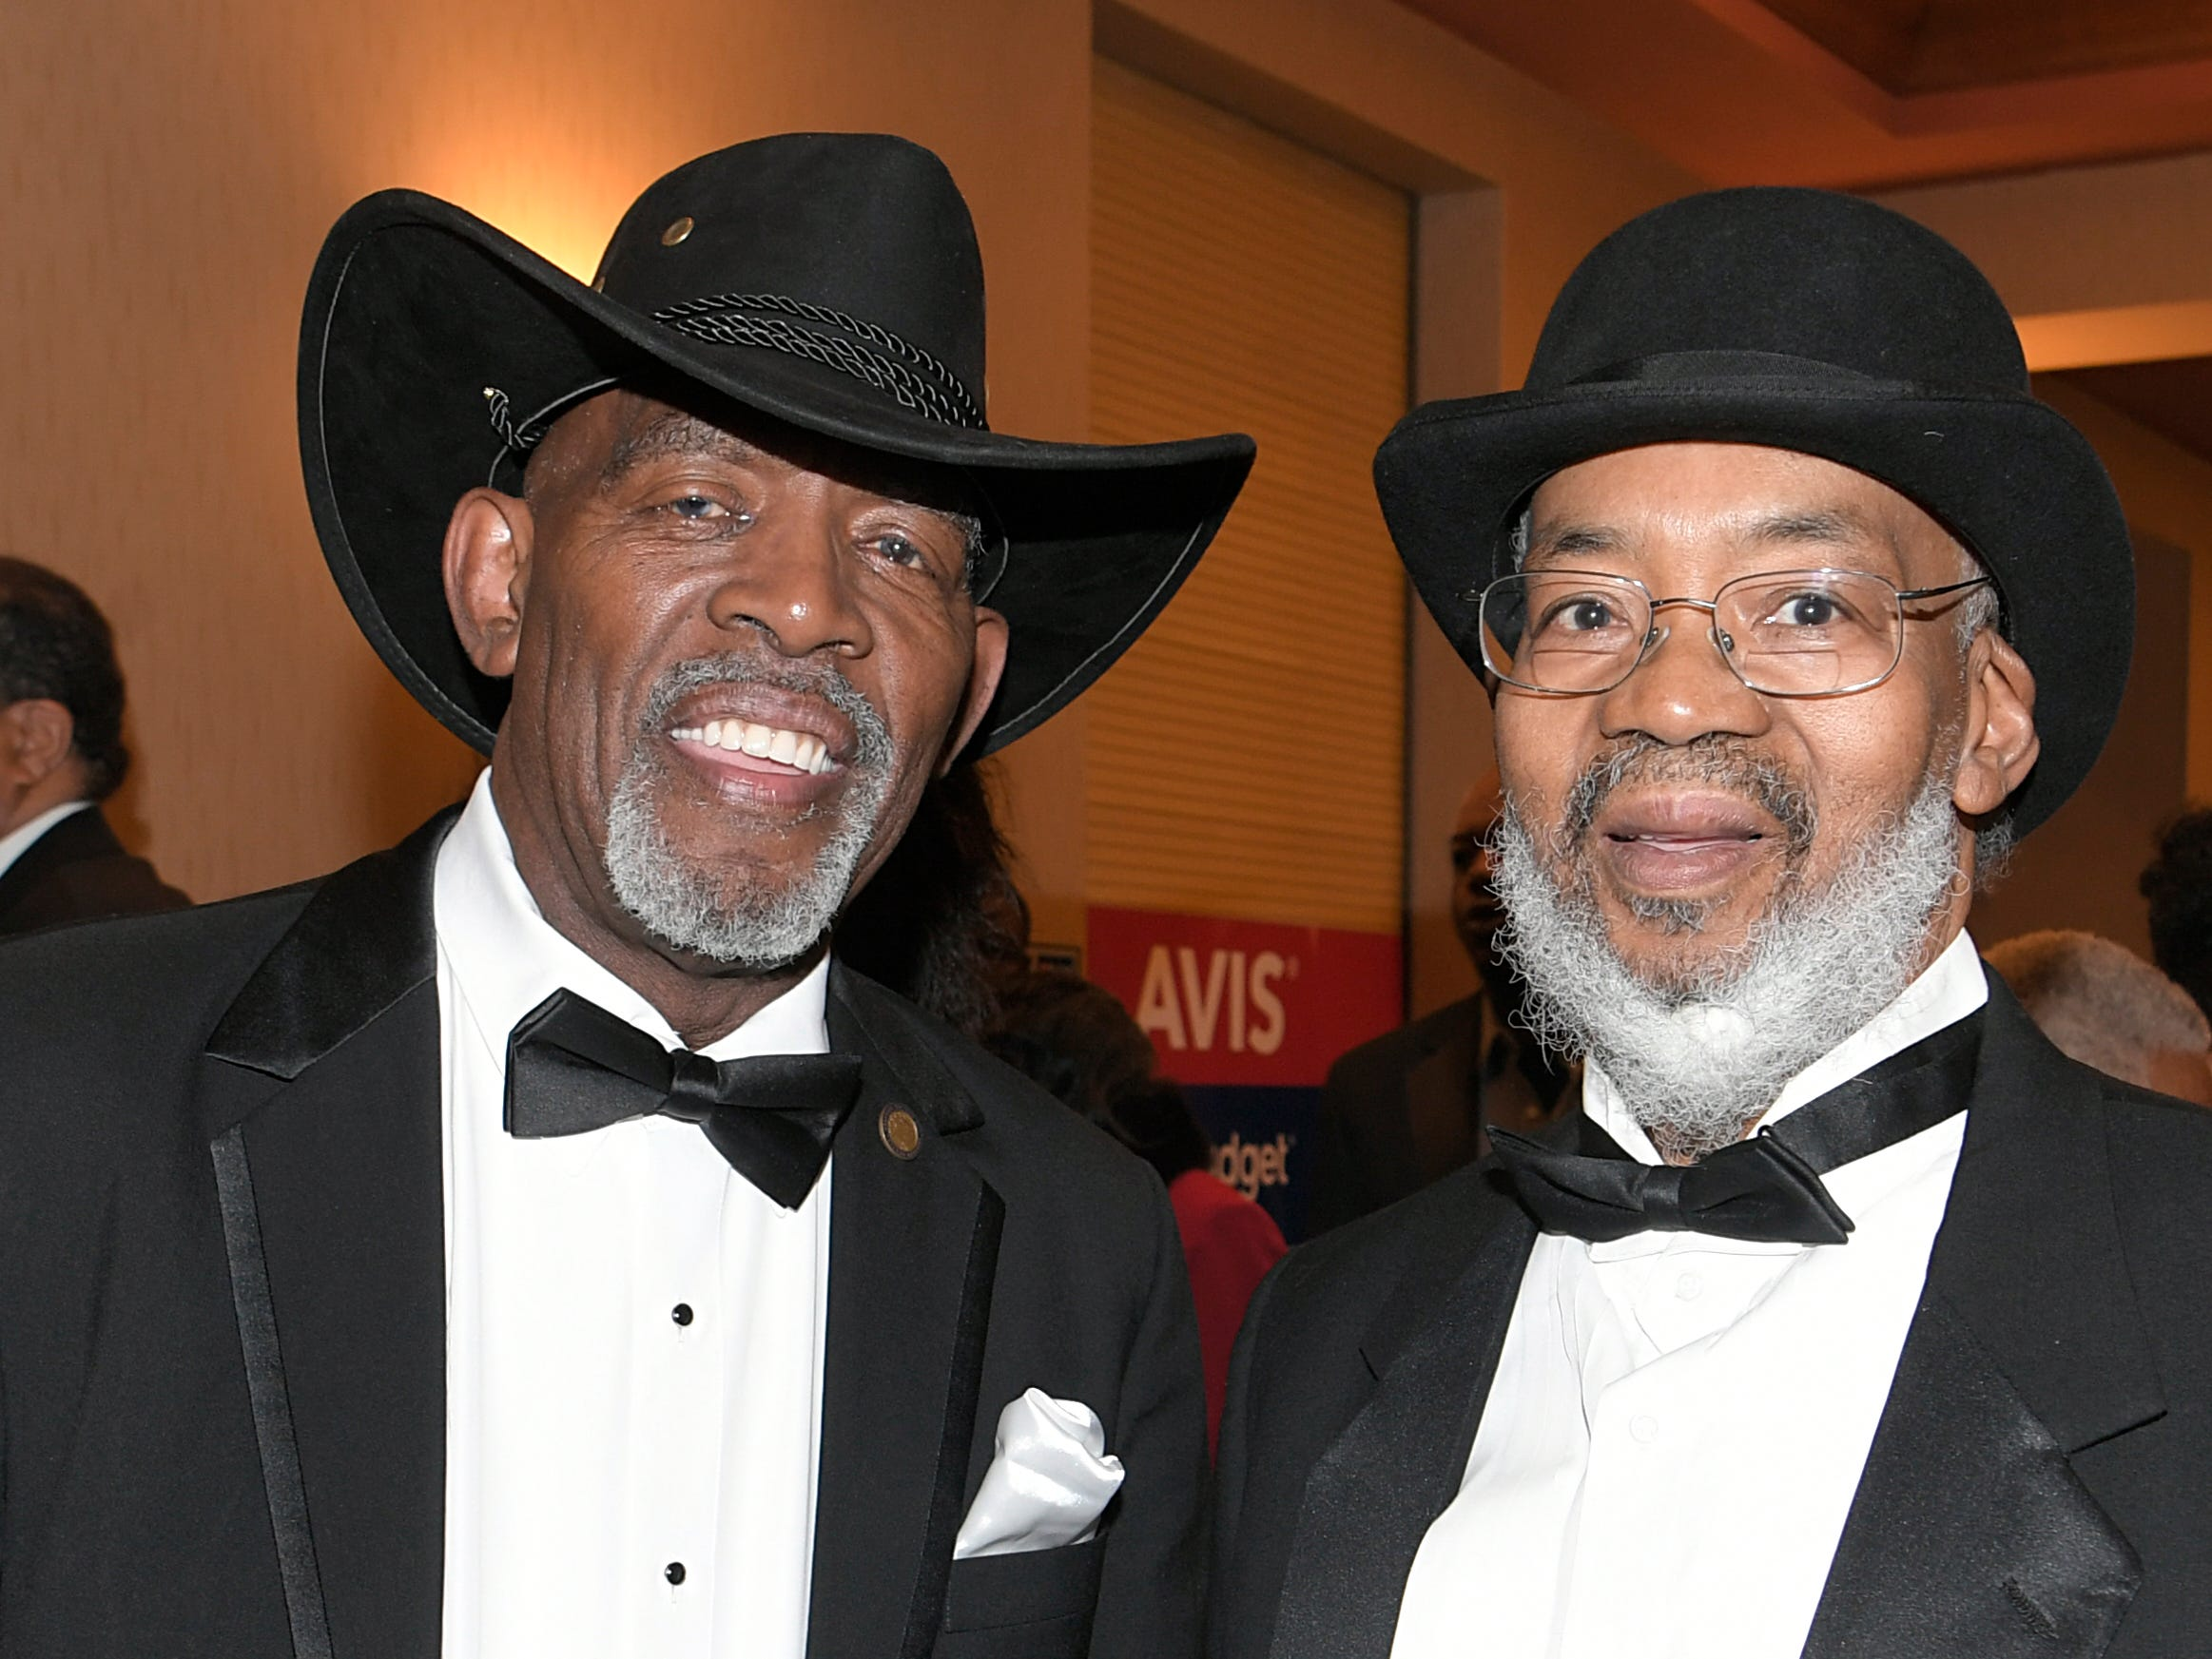 Cordell Witcherspoon and William Covinston at the African American Heritage Society's 18th Annual Black Tie Affair at the Embassy Suites in Franklin on Sat., Feb. 2, 2019.